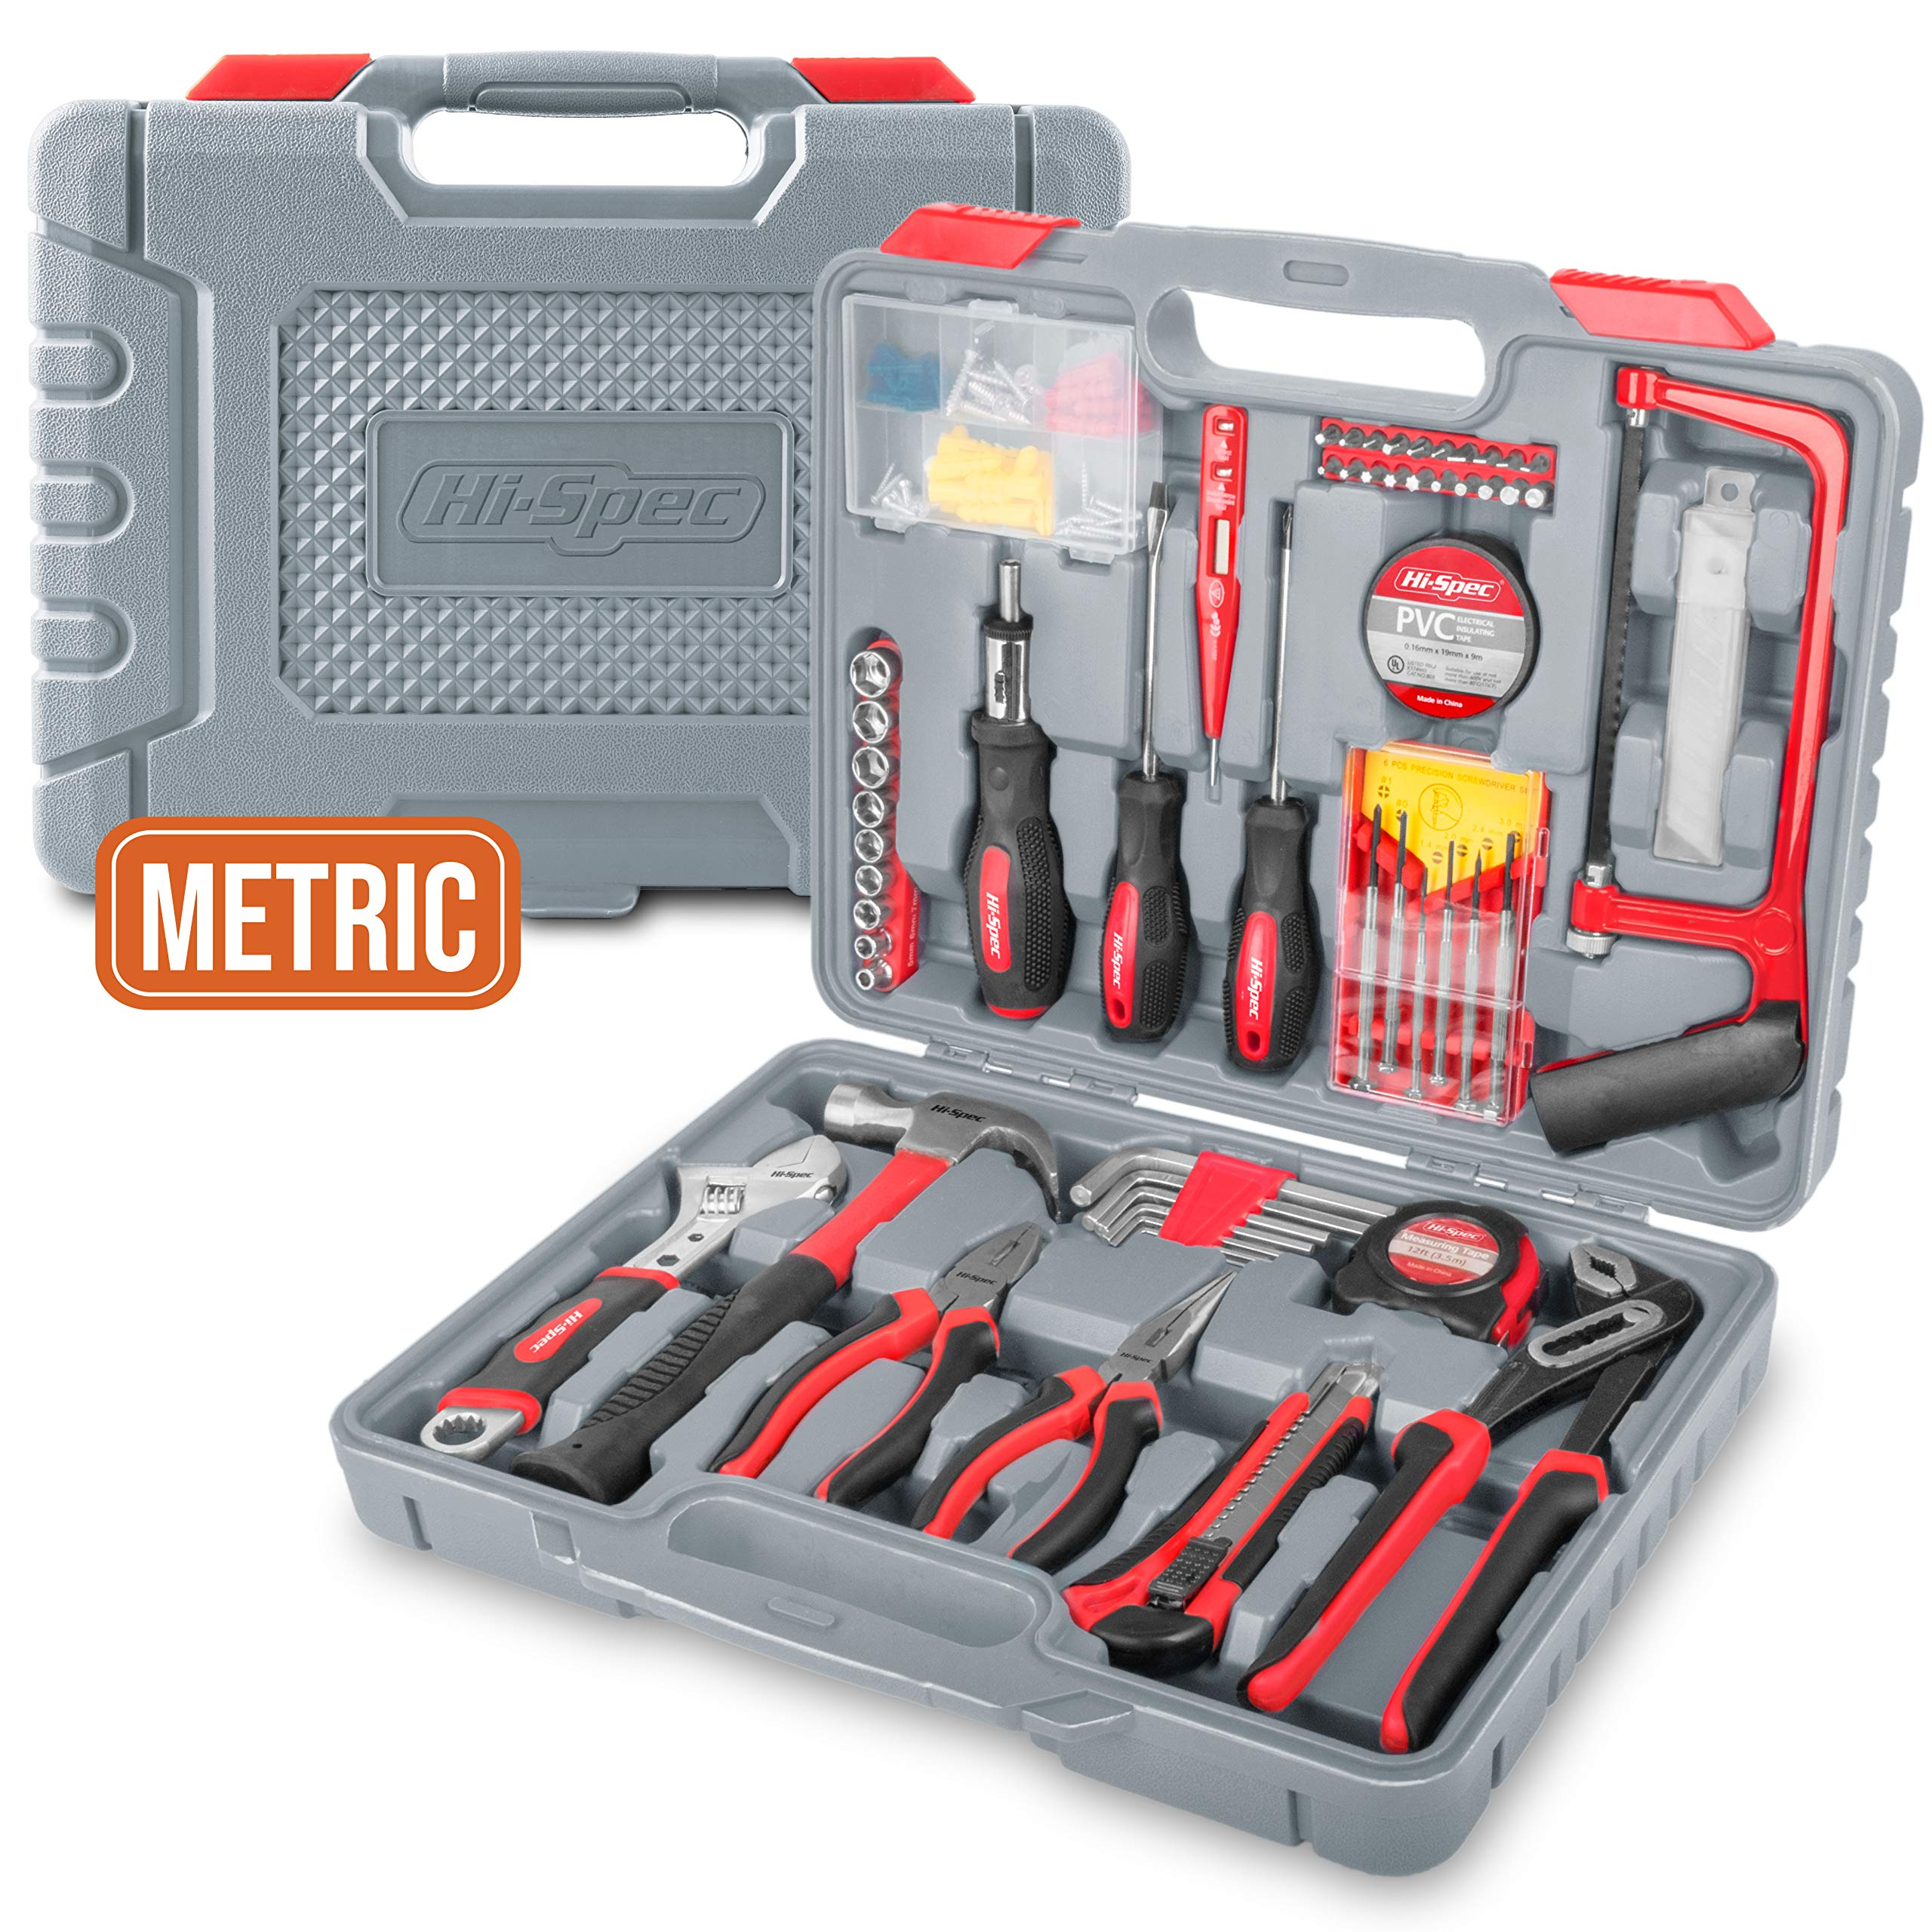 Hi-Spec 120 pc Home & Garage Tool Kit with Long Nose Pliers, Tongue and Groove Pliers, Ratcheting Bit Driver, Claw Hammer, Hack Saw, Precision Screwdriver Set, Adjustable Wrench & Sockets Tool Set